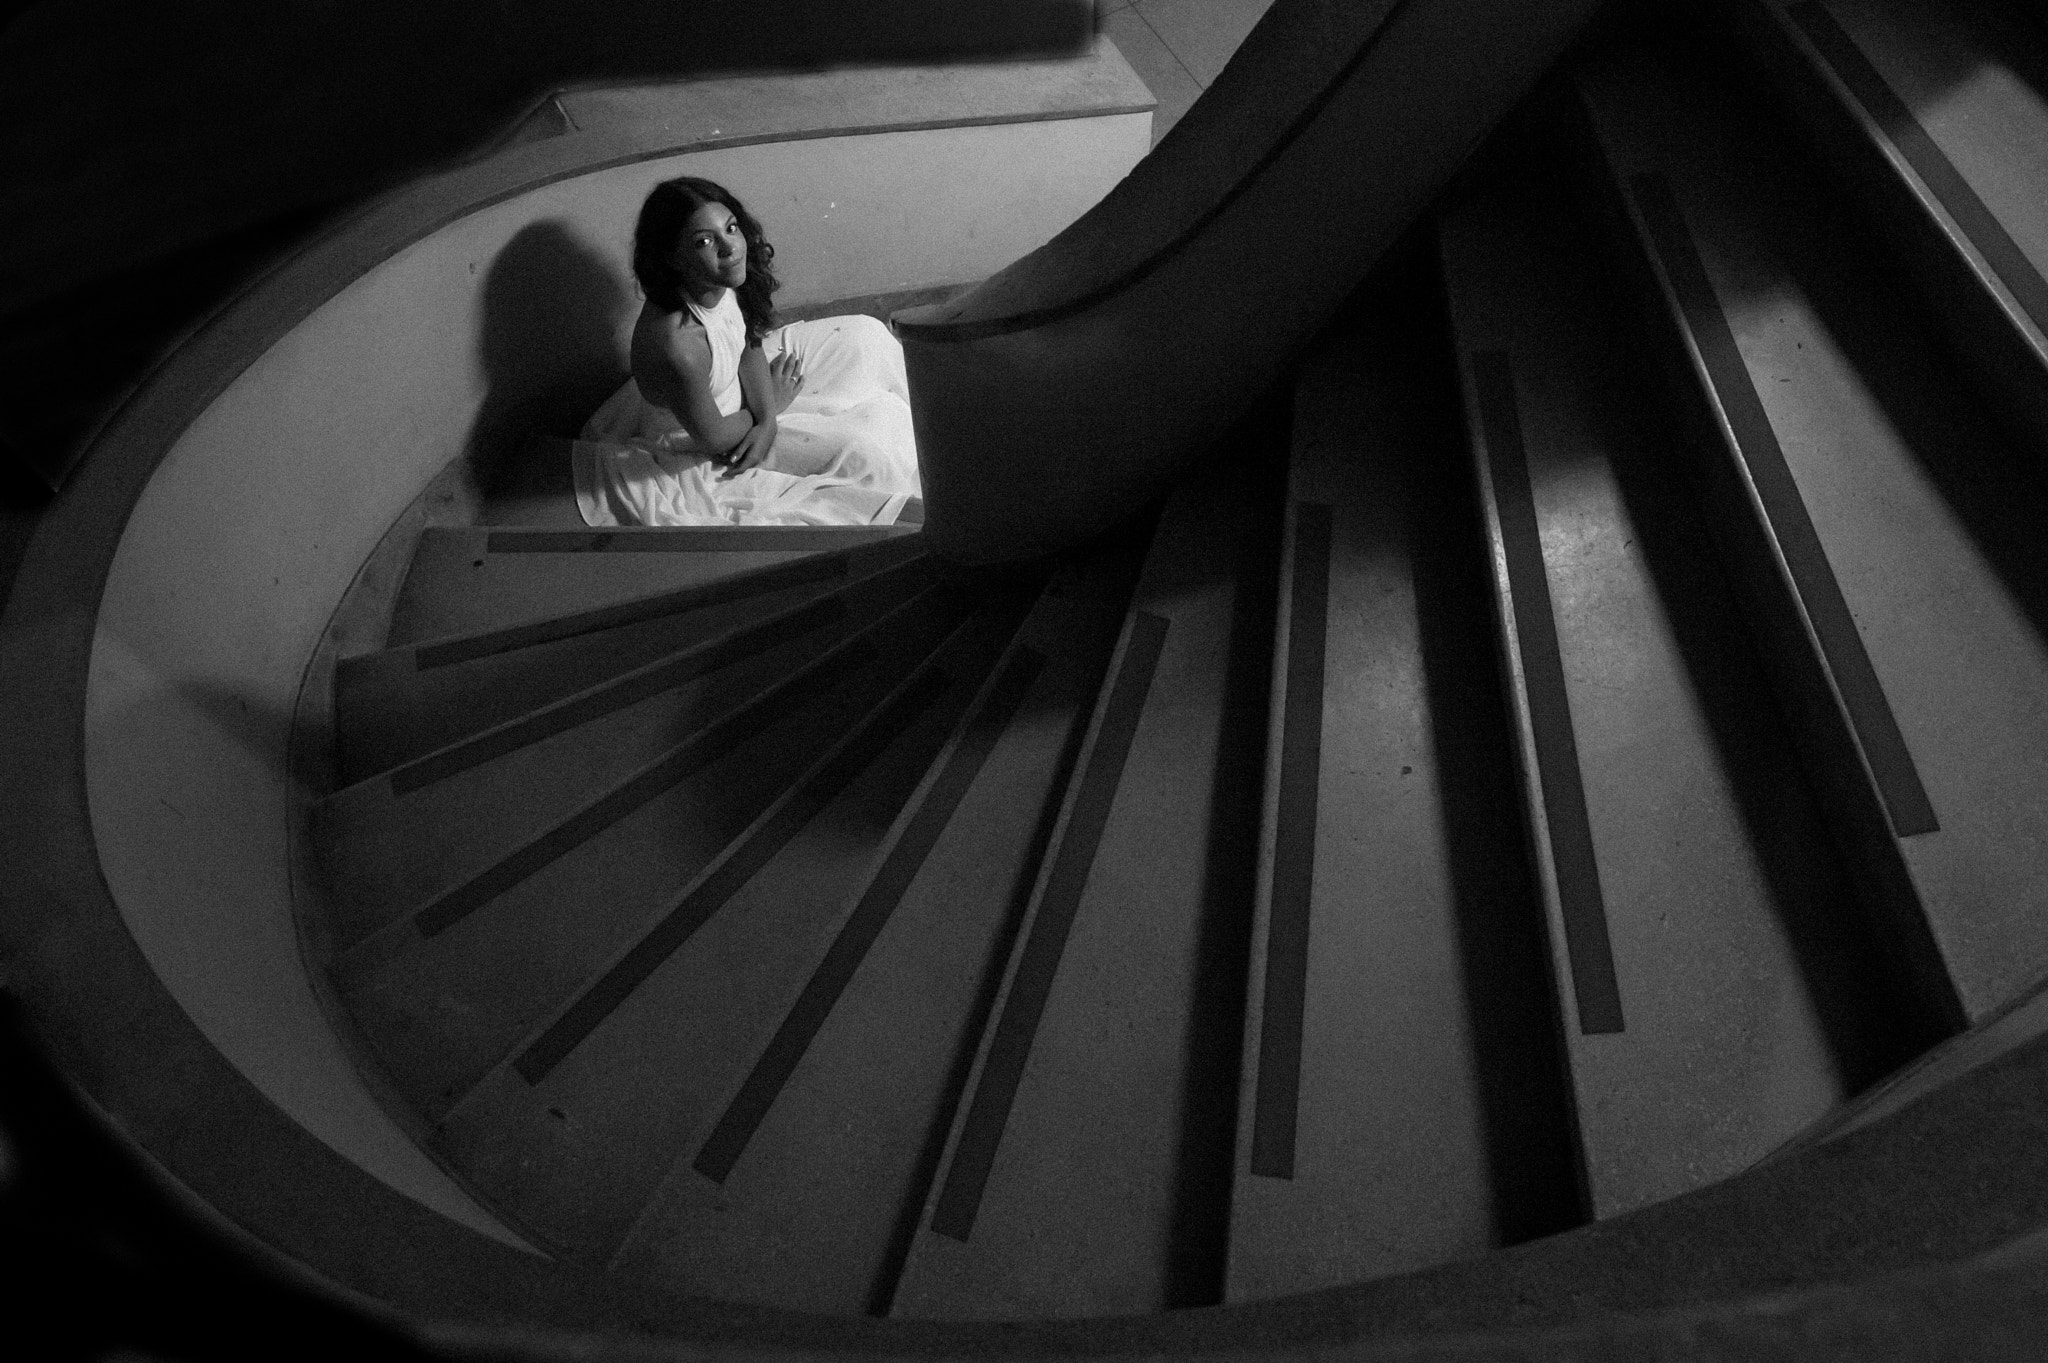 Photograph Rest on the stairs by Sonia Braga on 500px